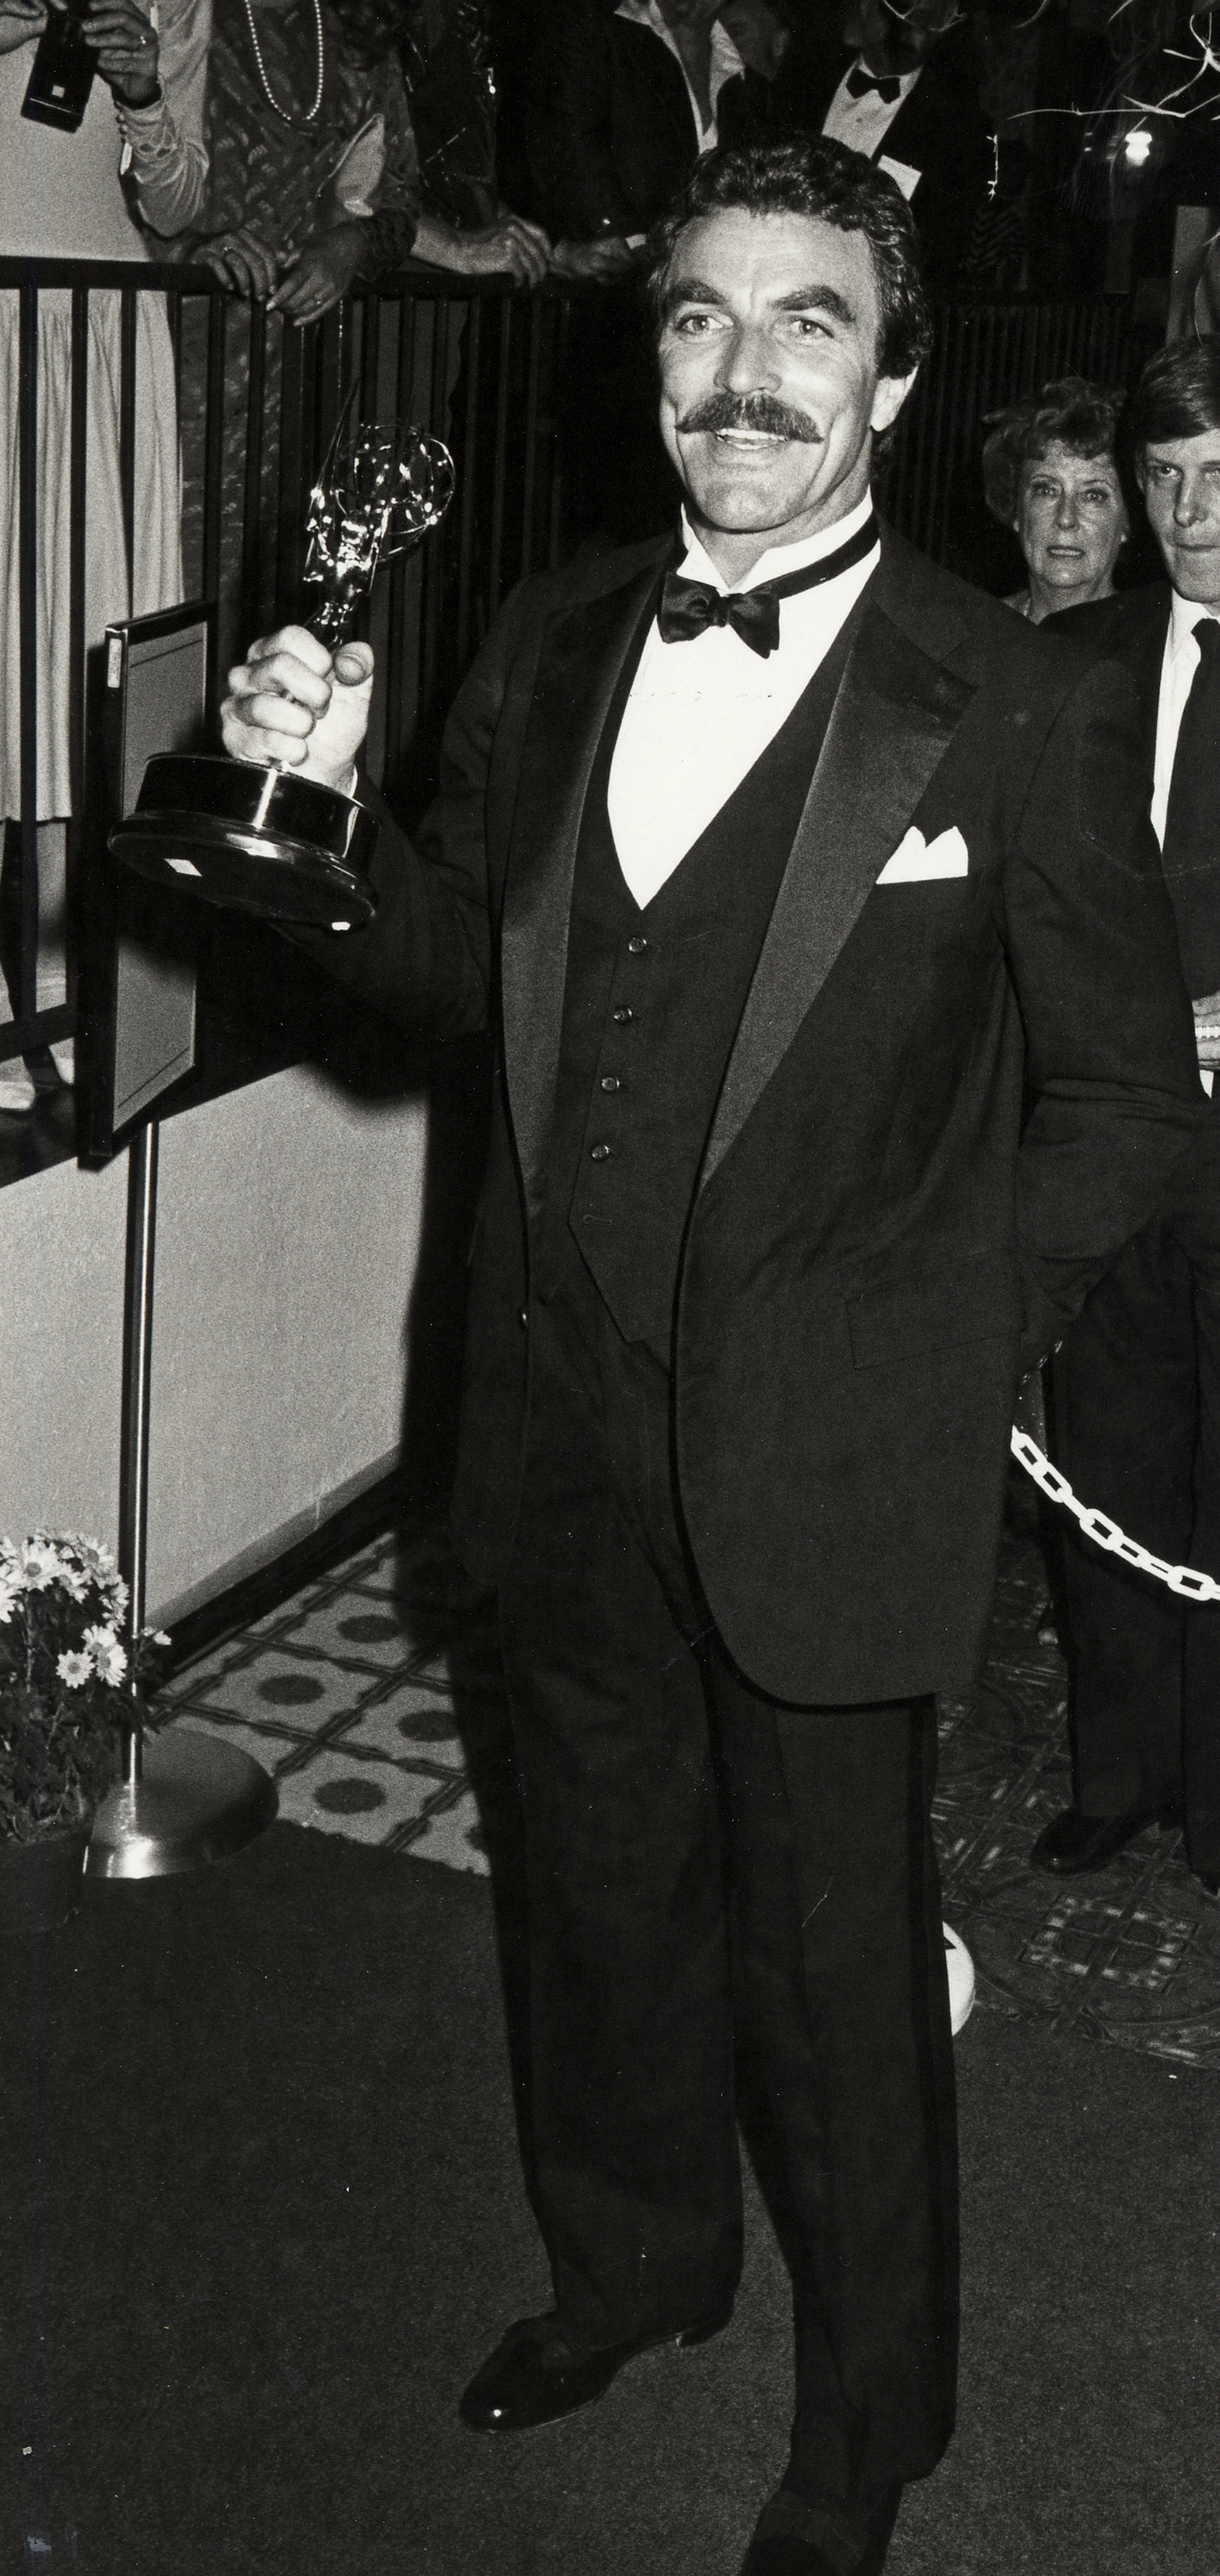 Tom Selleck at the 36th Annual Emmy Awards with his winning trophy.